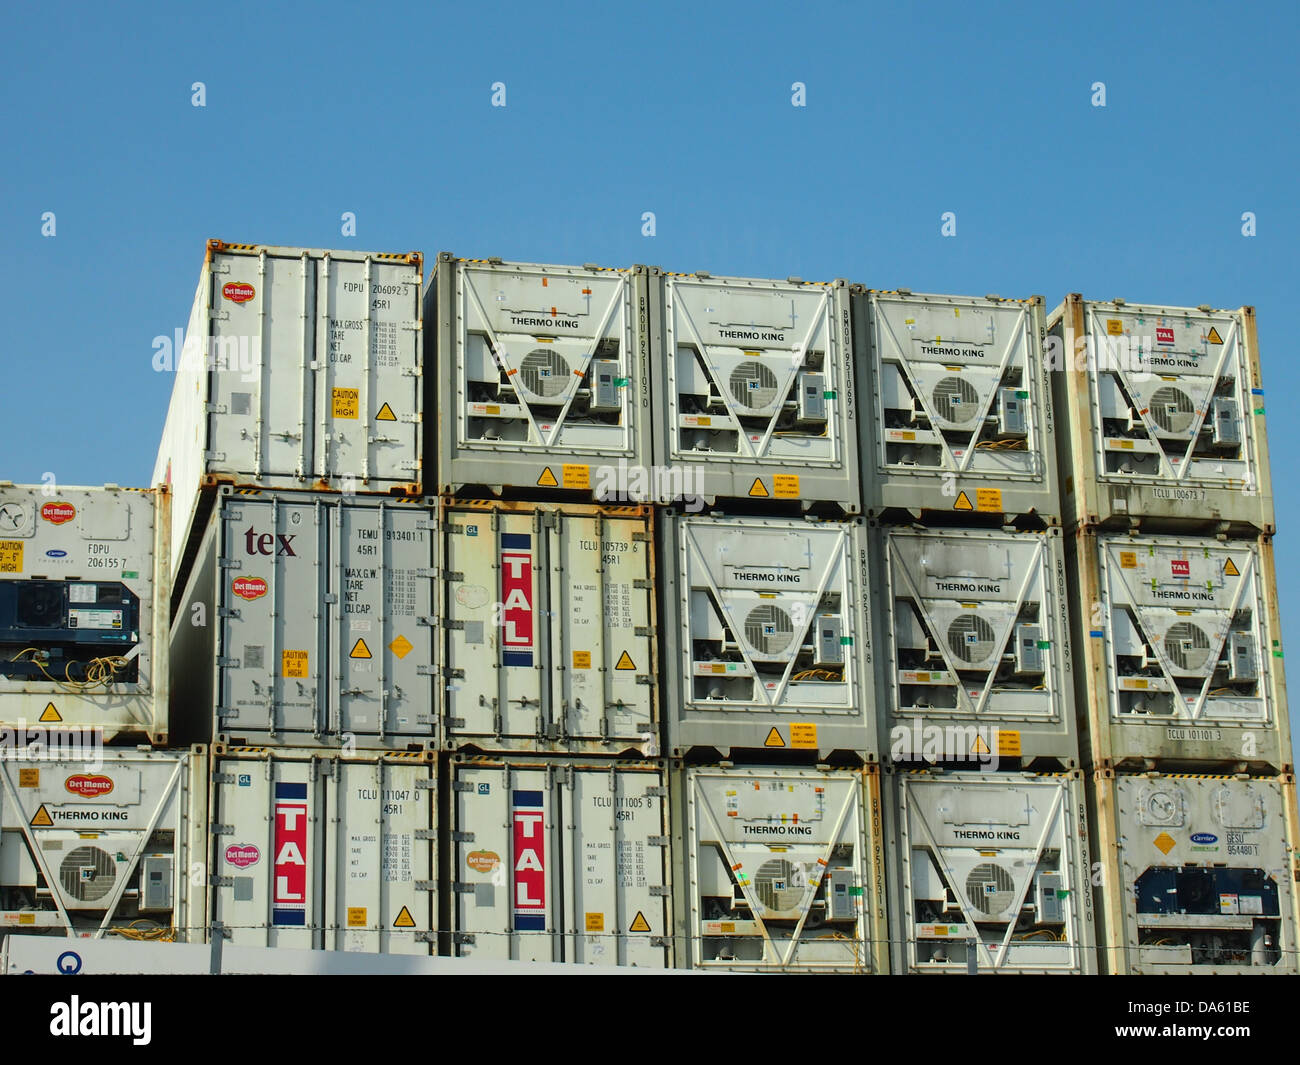 Refrigerated shipping containers stacked on top of each